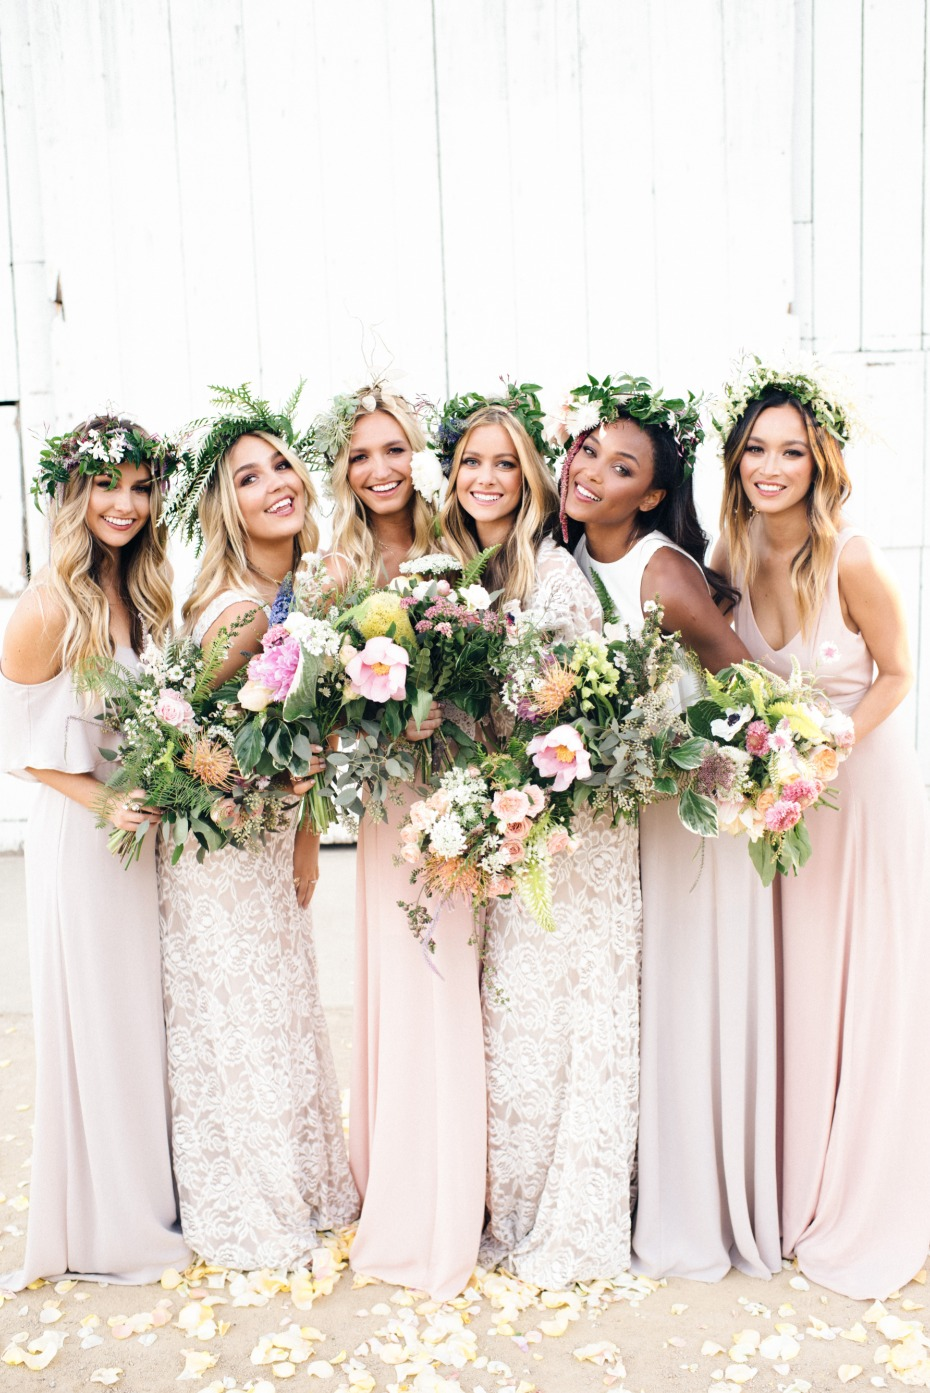 pink bridesmaid dresses and lace bridesmaid dresses for the maids of honor